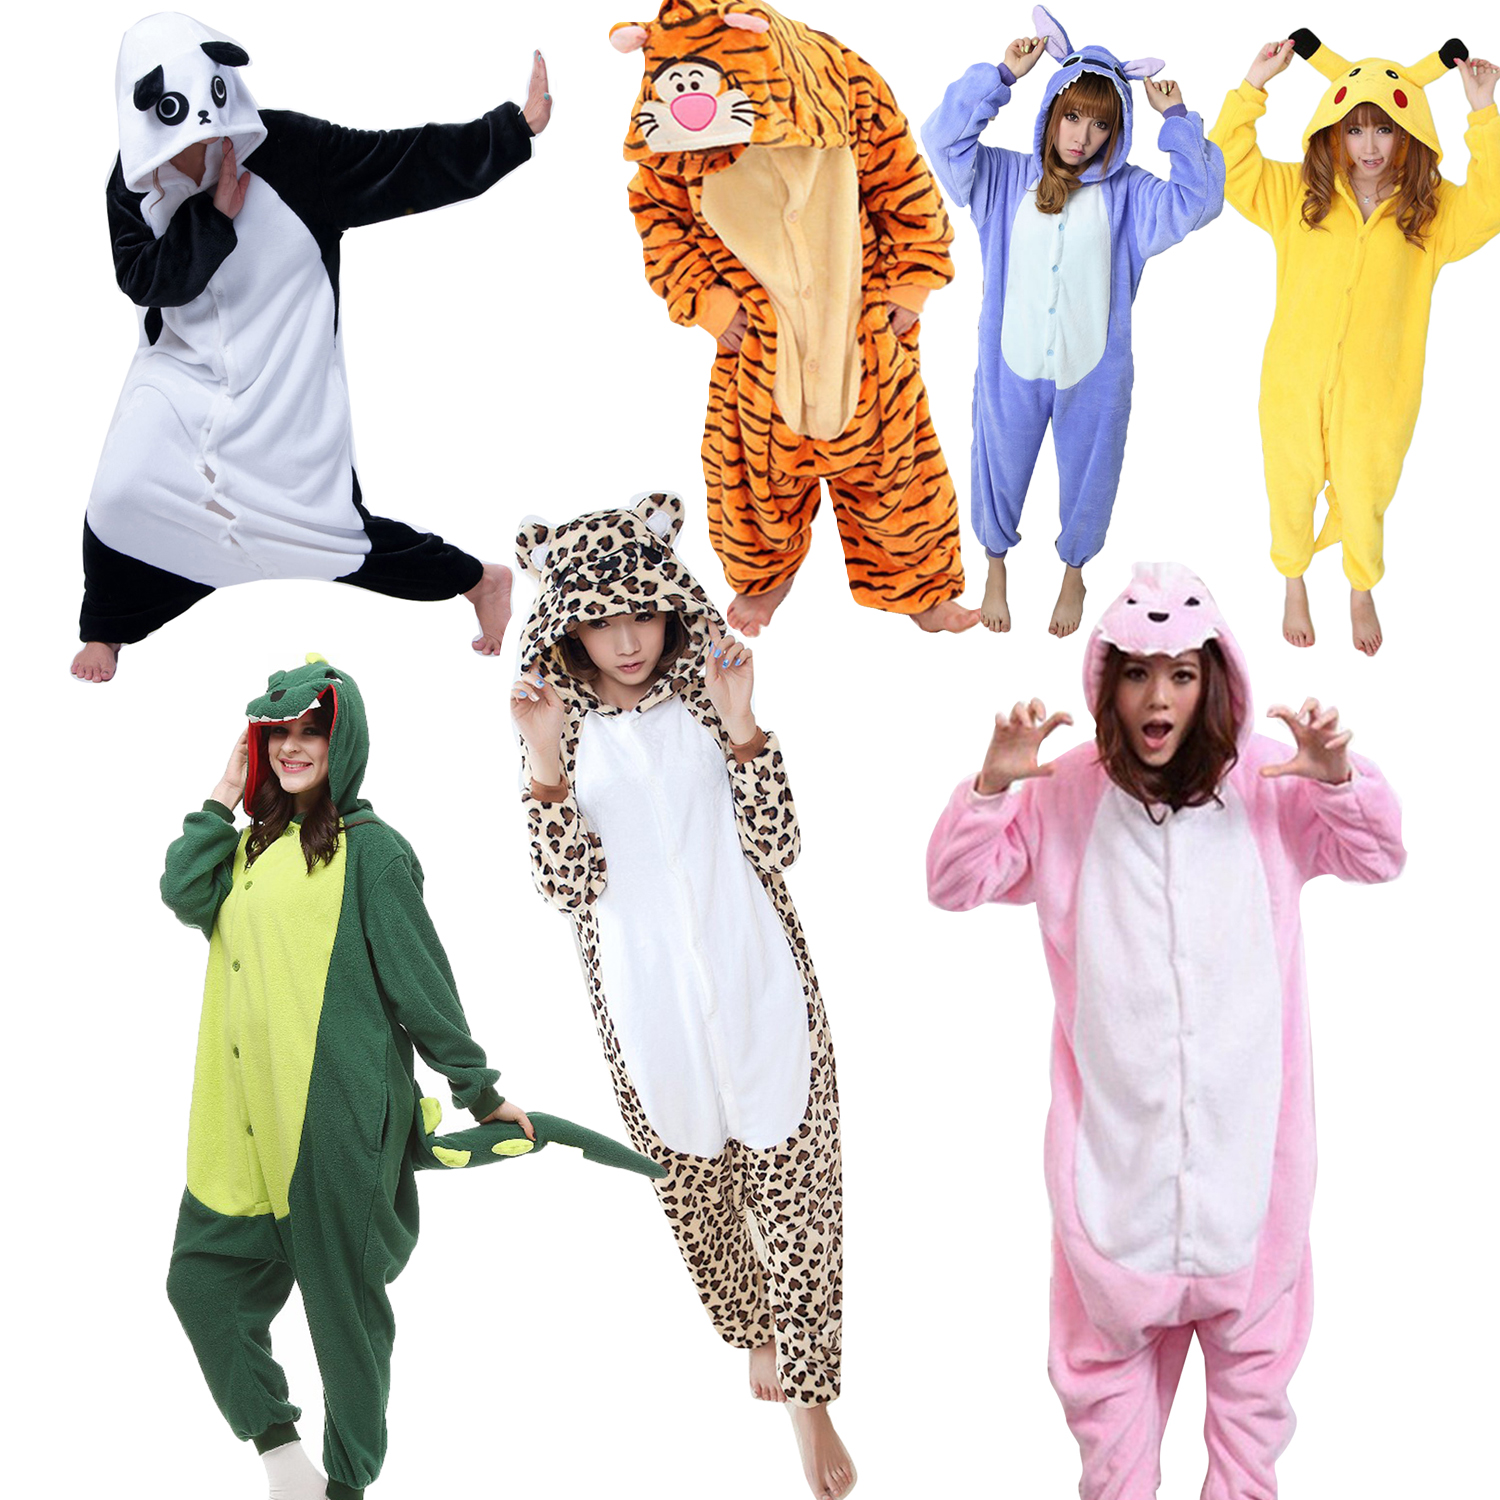 07fa1a5b9c26 Winter Adults Pajama Sets Cute Halloween Women Sleepwear Warm Cosplay  Animals Onesies Women Pajamas Cartoon Girls ...